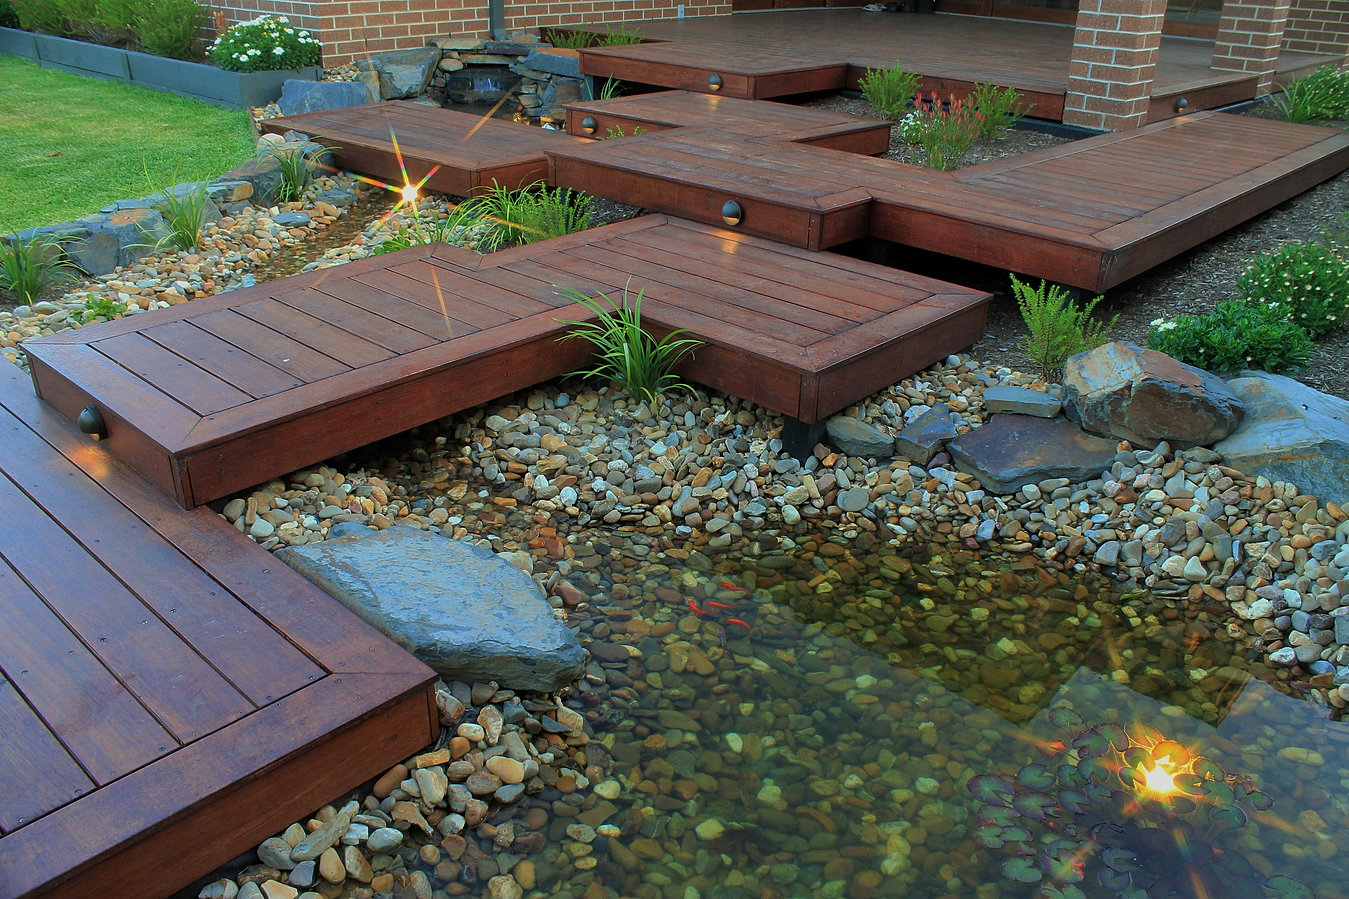 Landscaping melbourne garden design intrinsic landscapes for Landscaping rocks melbourne